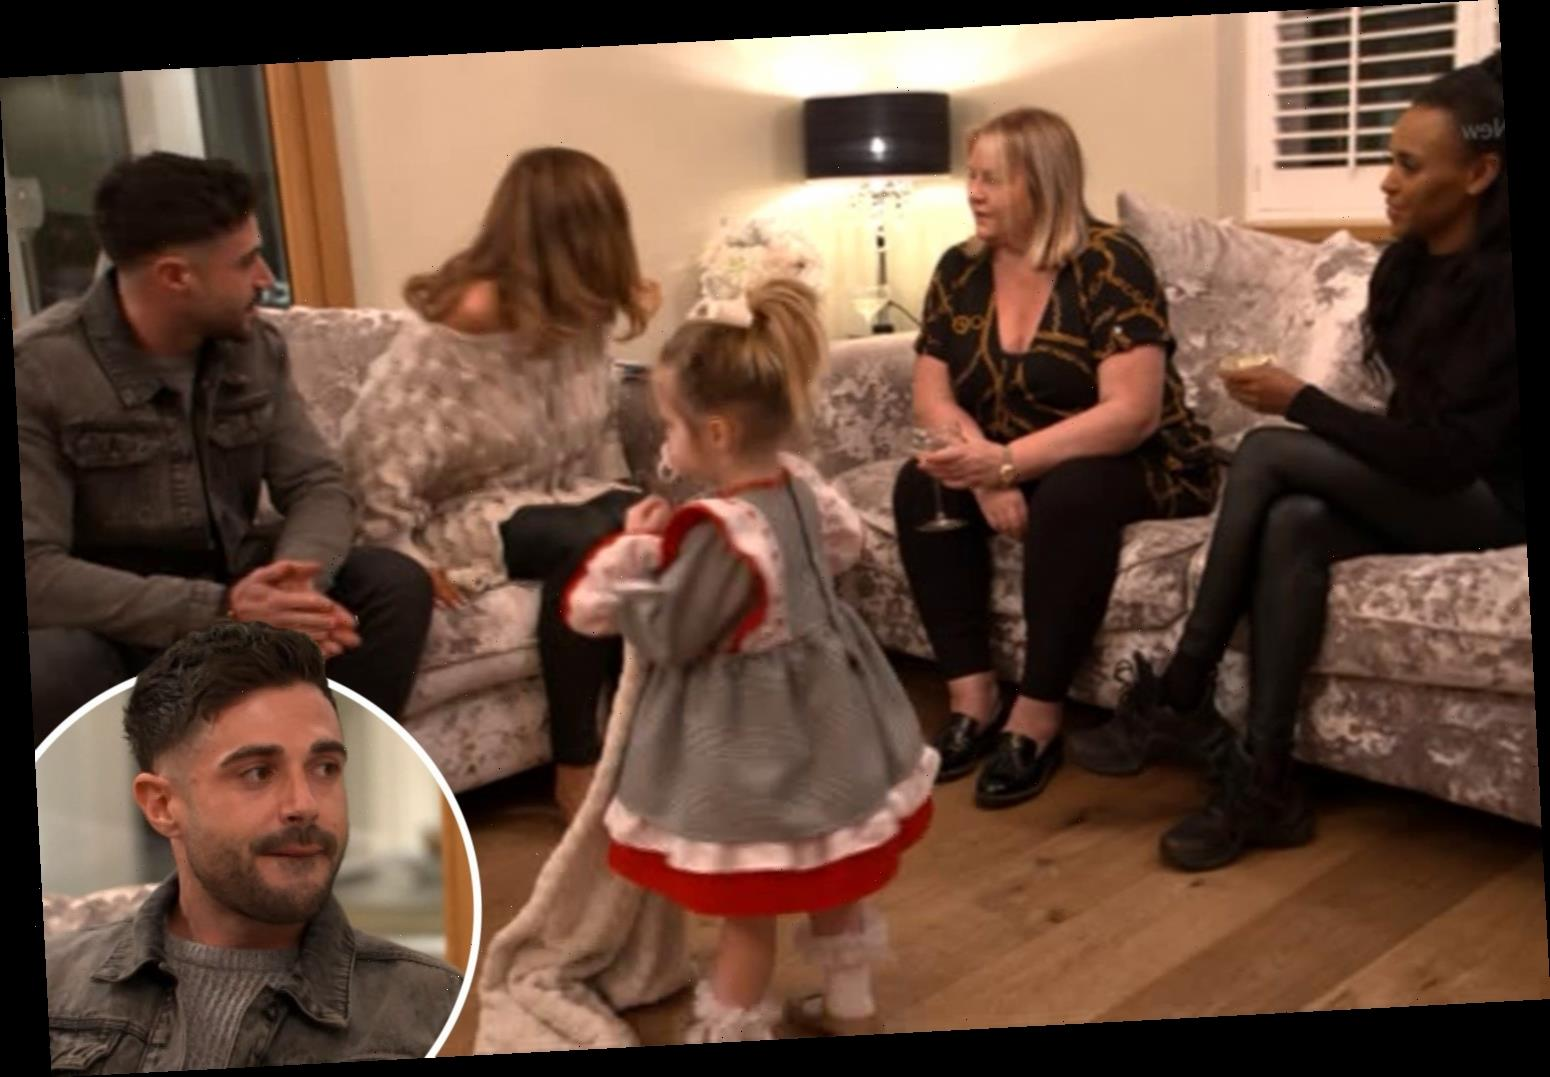 Celebs Go Dating's Amy Childs takes new man Jamie home to meet her daughter Polly, 2 – The Sun